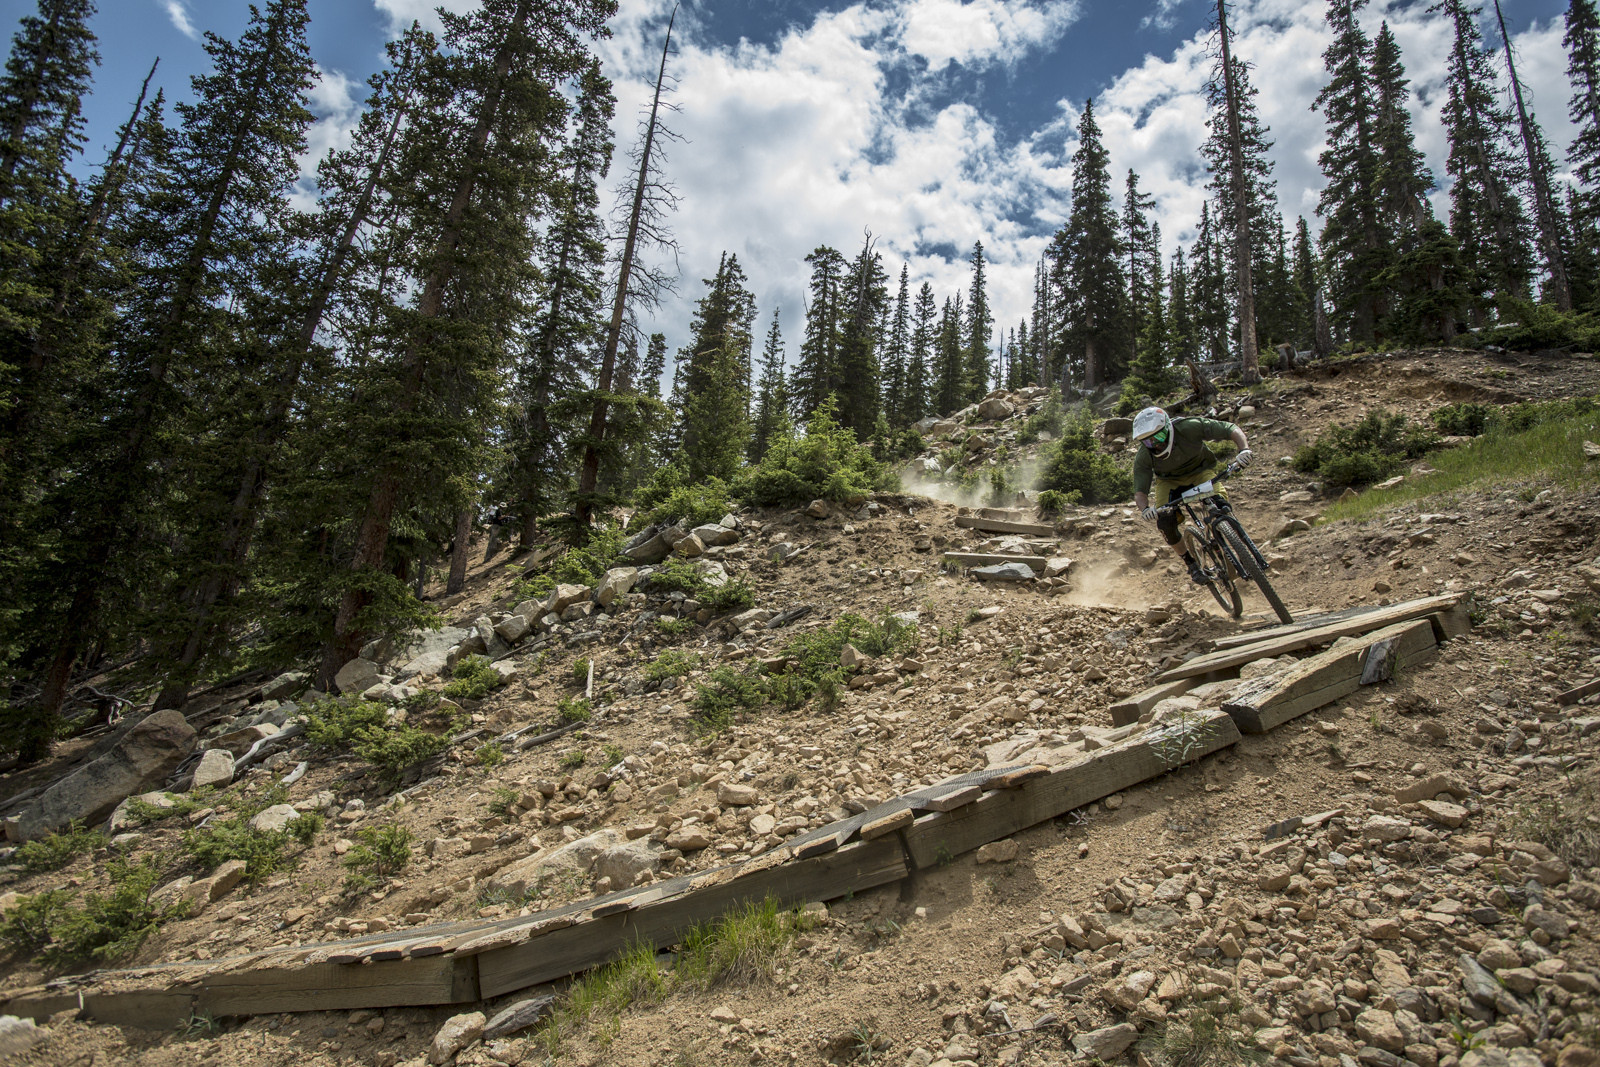 Ross Schnell, 2nd Place at the Keystone Big Mountain Enduro - Photos, Videos from the Keystone Big Mountain Enduro, Part of the North American Enduro Tour - Mountain Biking Pictures - Vital MTB